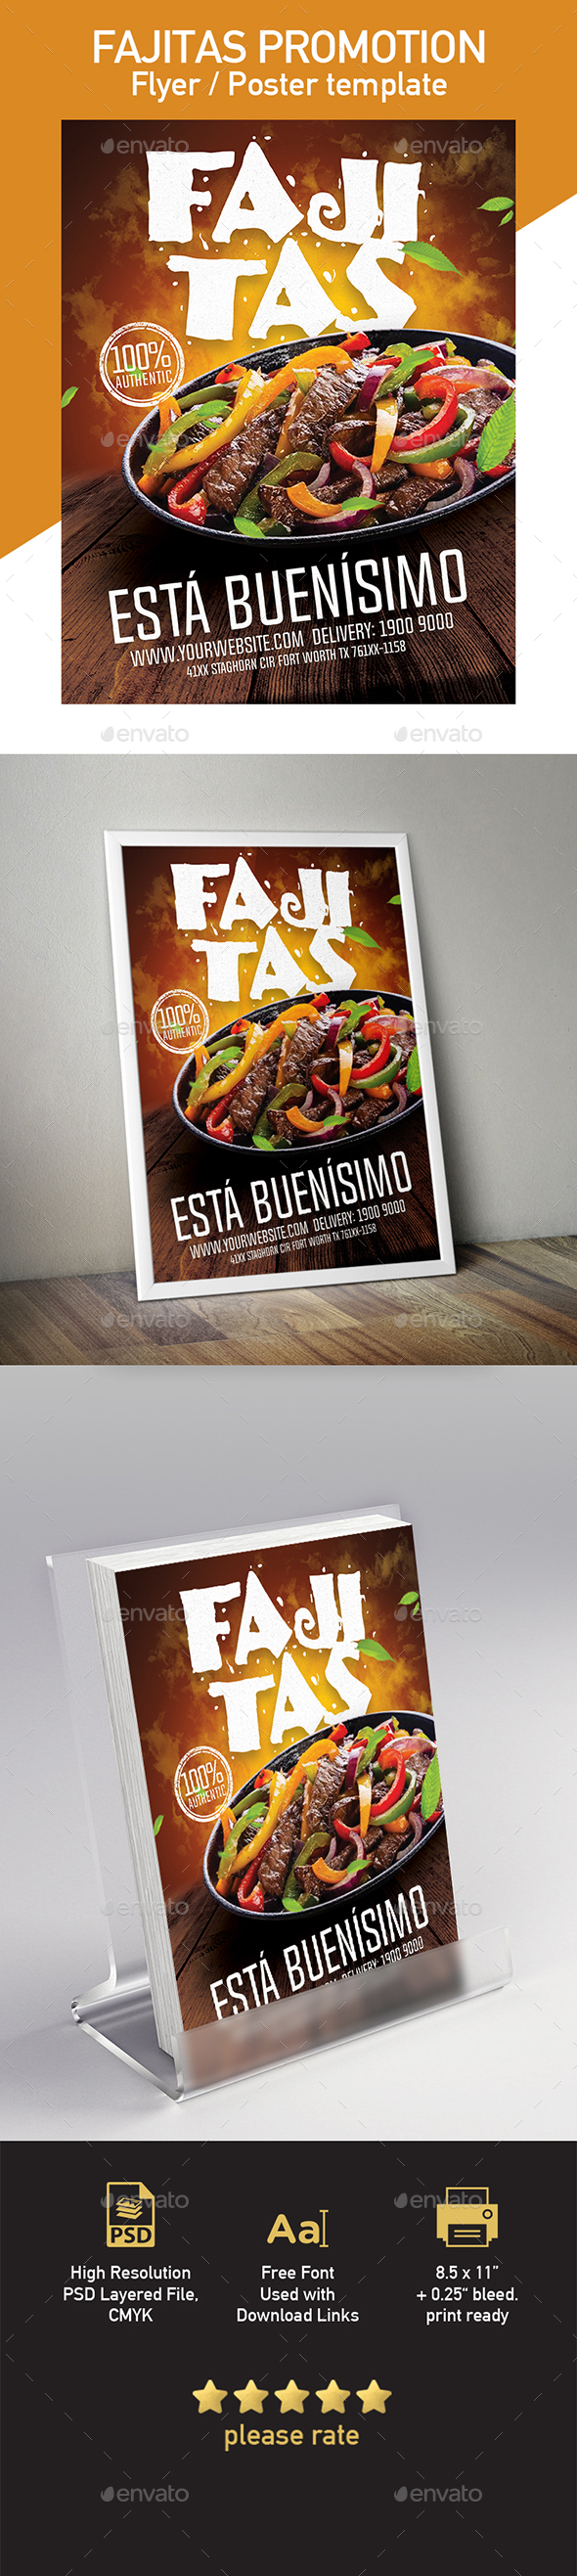 Fajitas Flyer or Poster Template - Restaurant Flyers